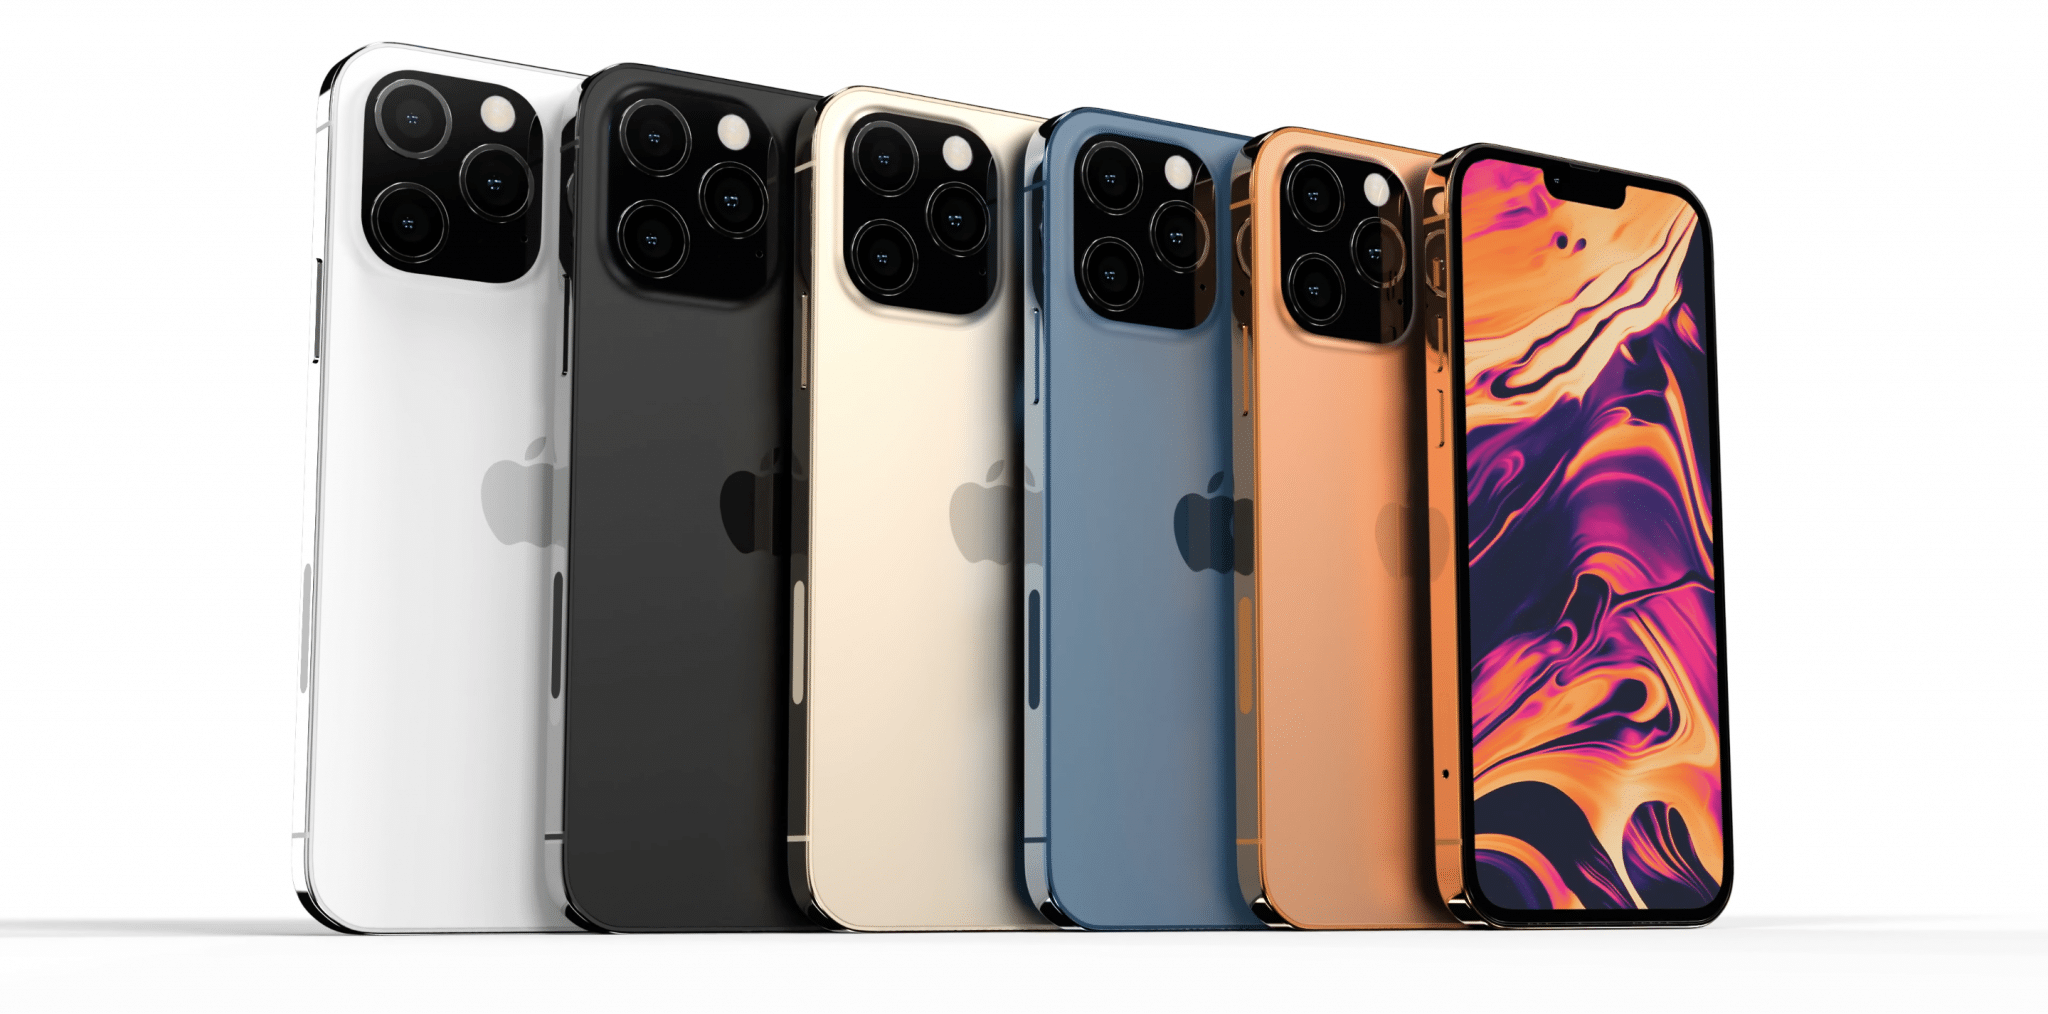 Apple iPhone 13, Watch Series 7, iPad mini 6 & more allegedly coming this fall